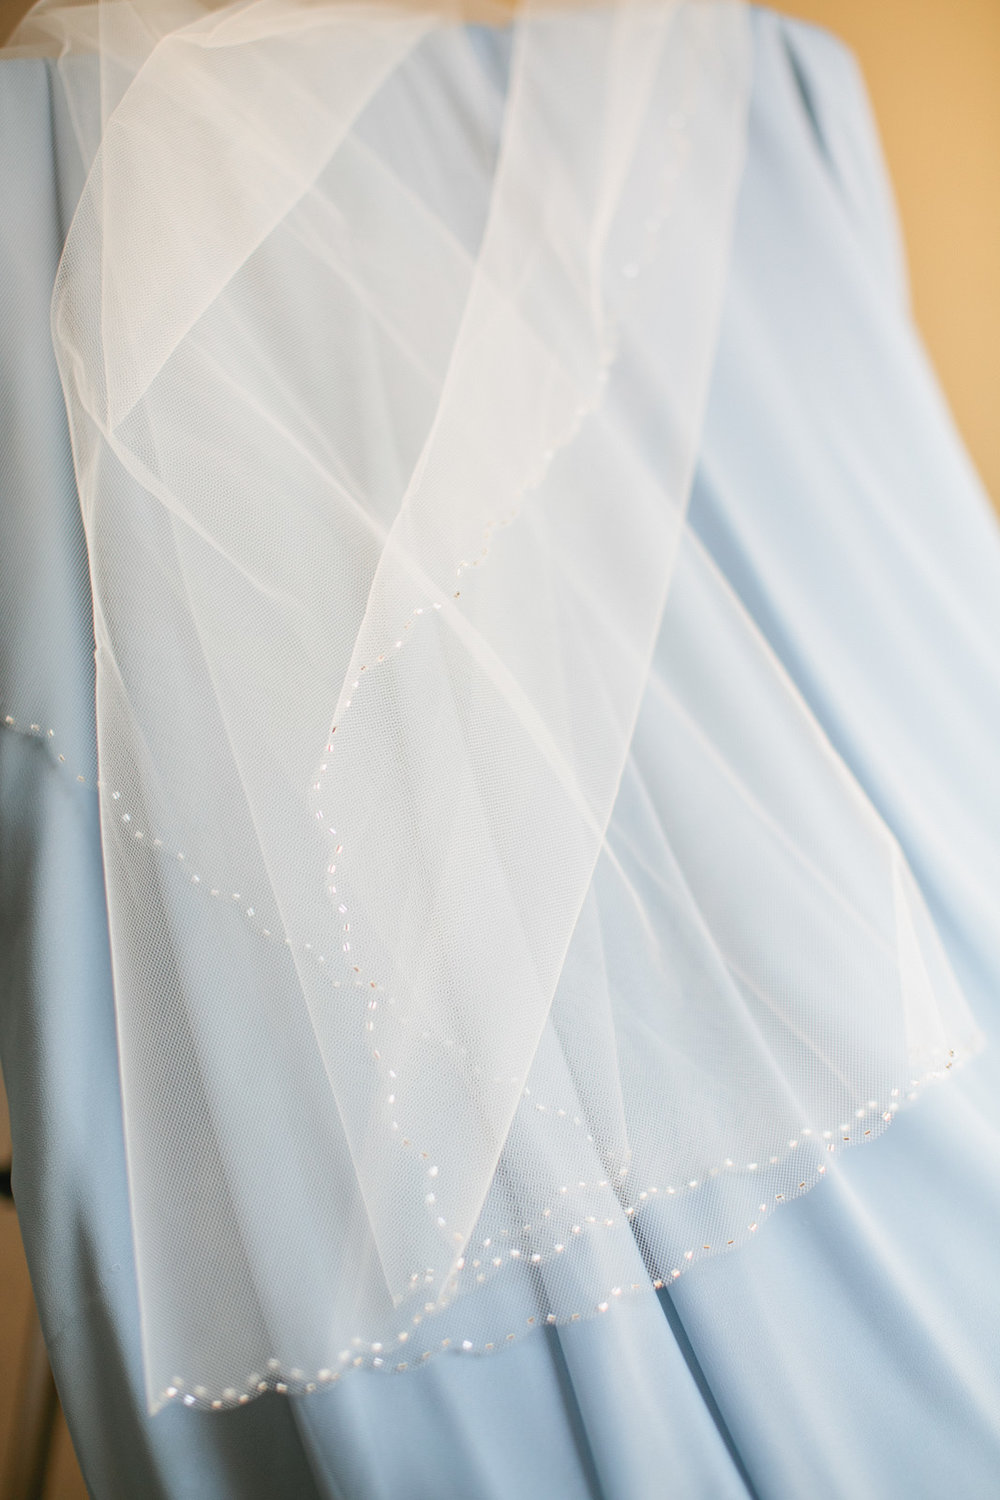 wedding veil on bridesmaid dress